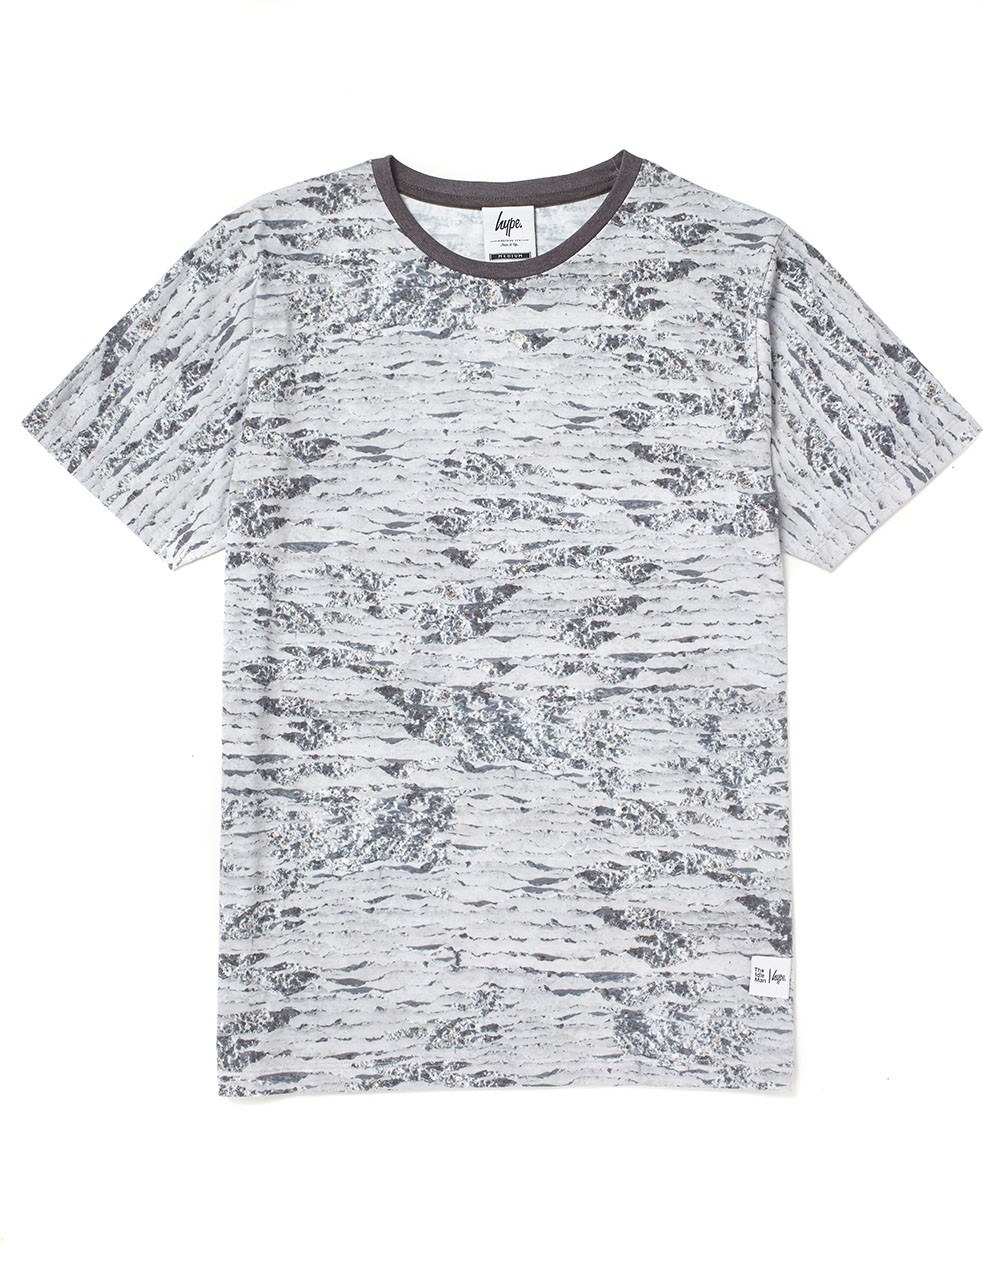 Lyst hype x the idle man moon landing all over print t for All over printing t shirts